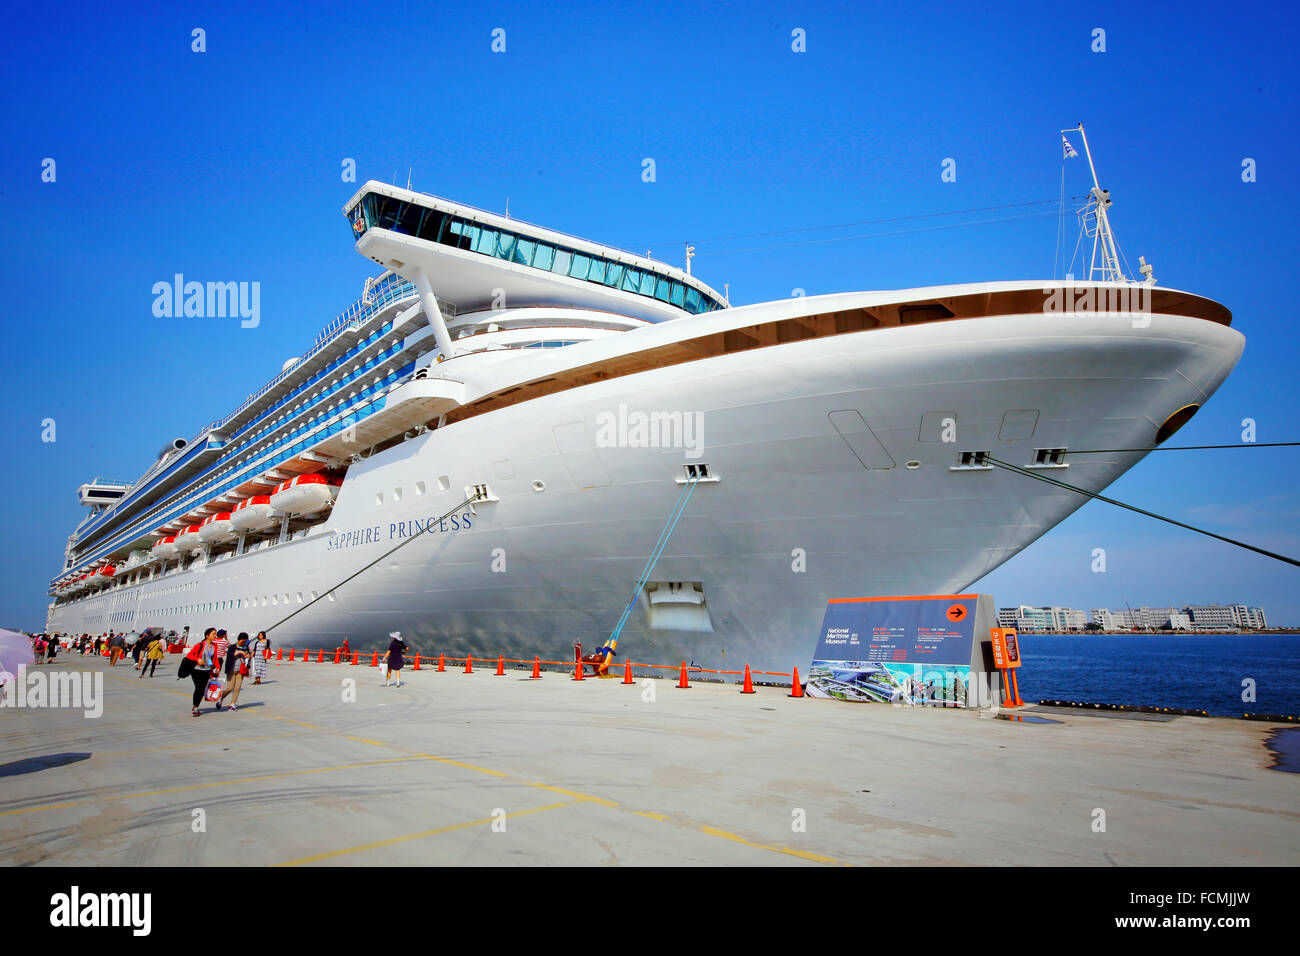 Cruise ship moored at dock against blue sky - Stock Image